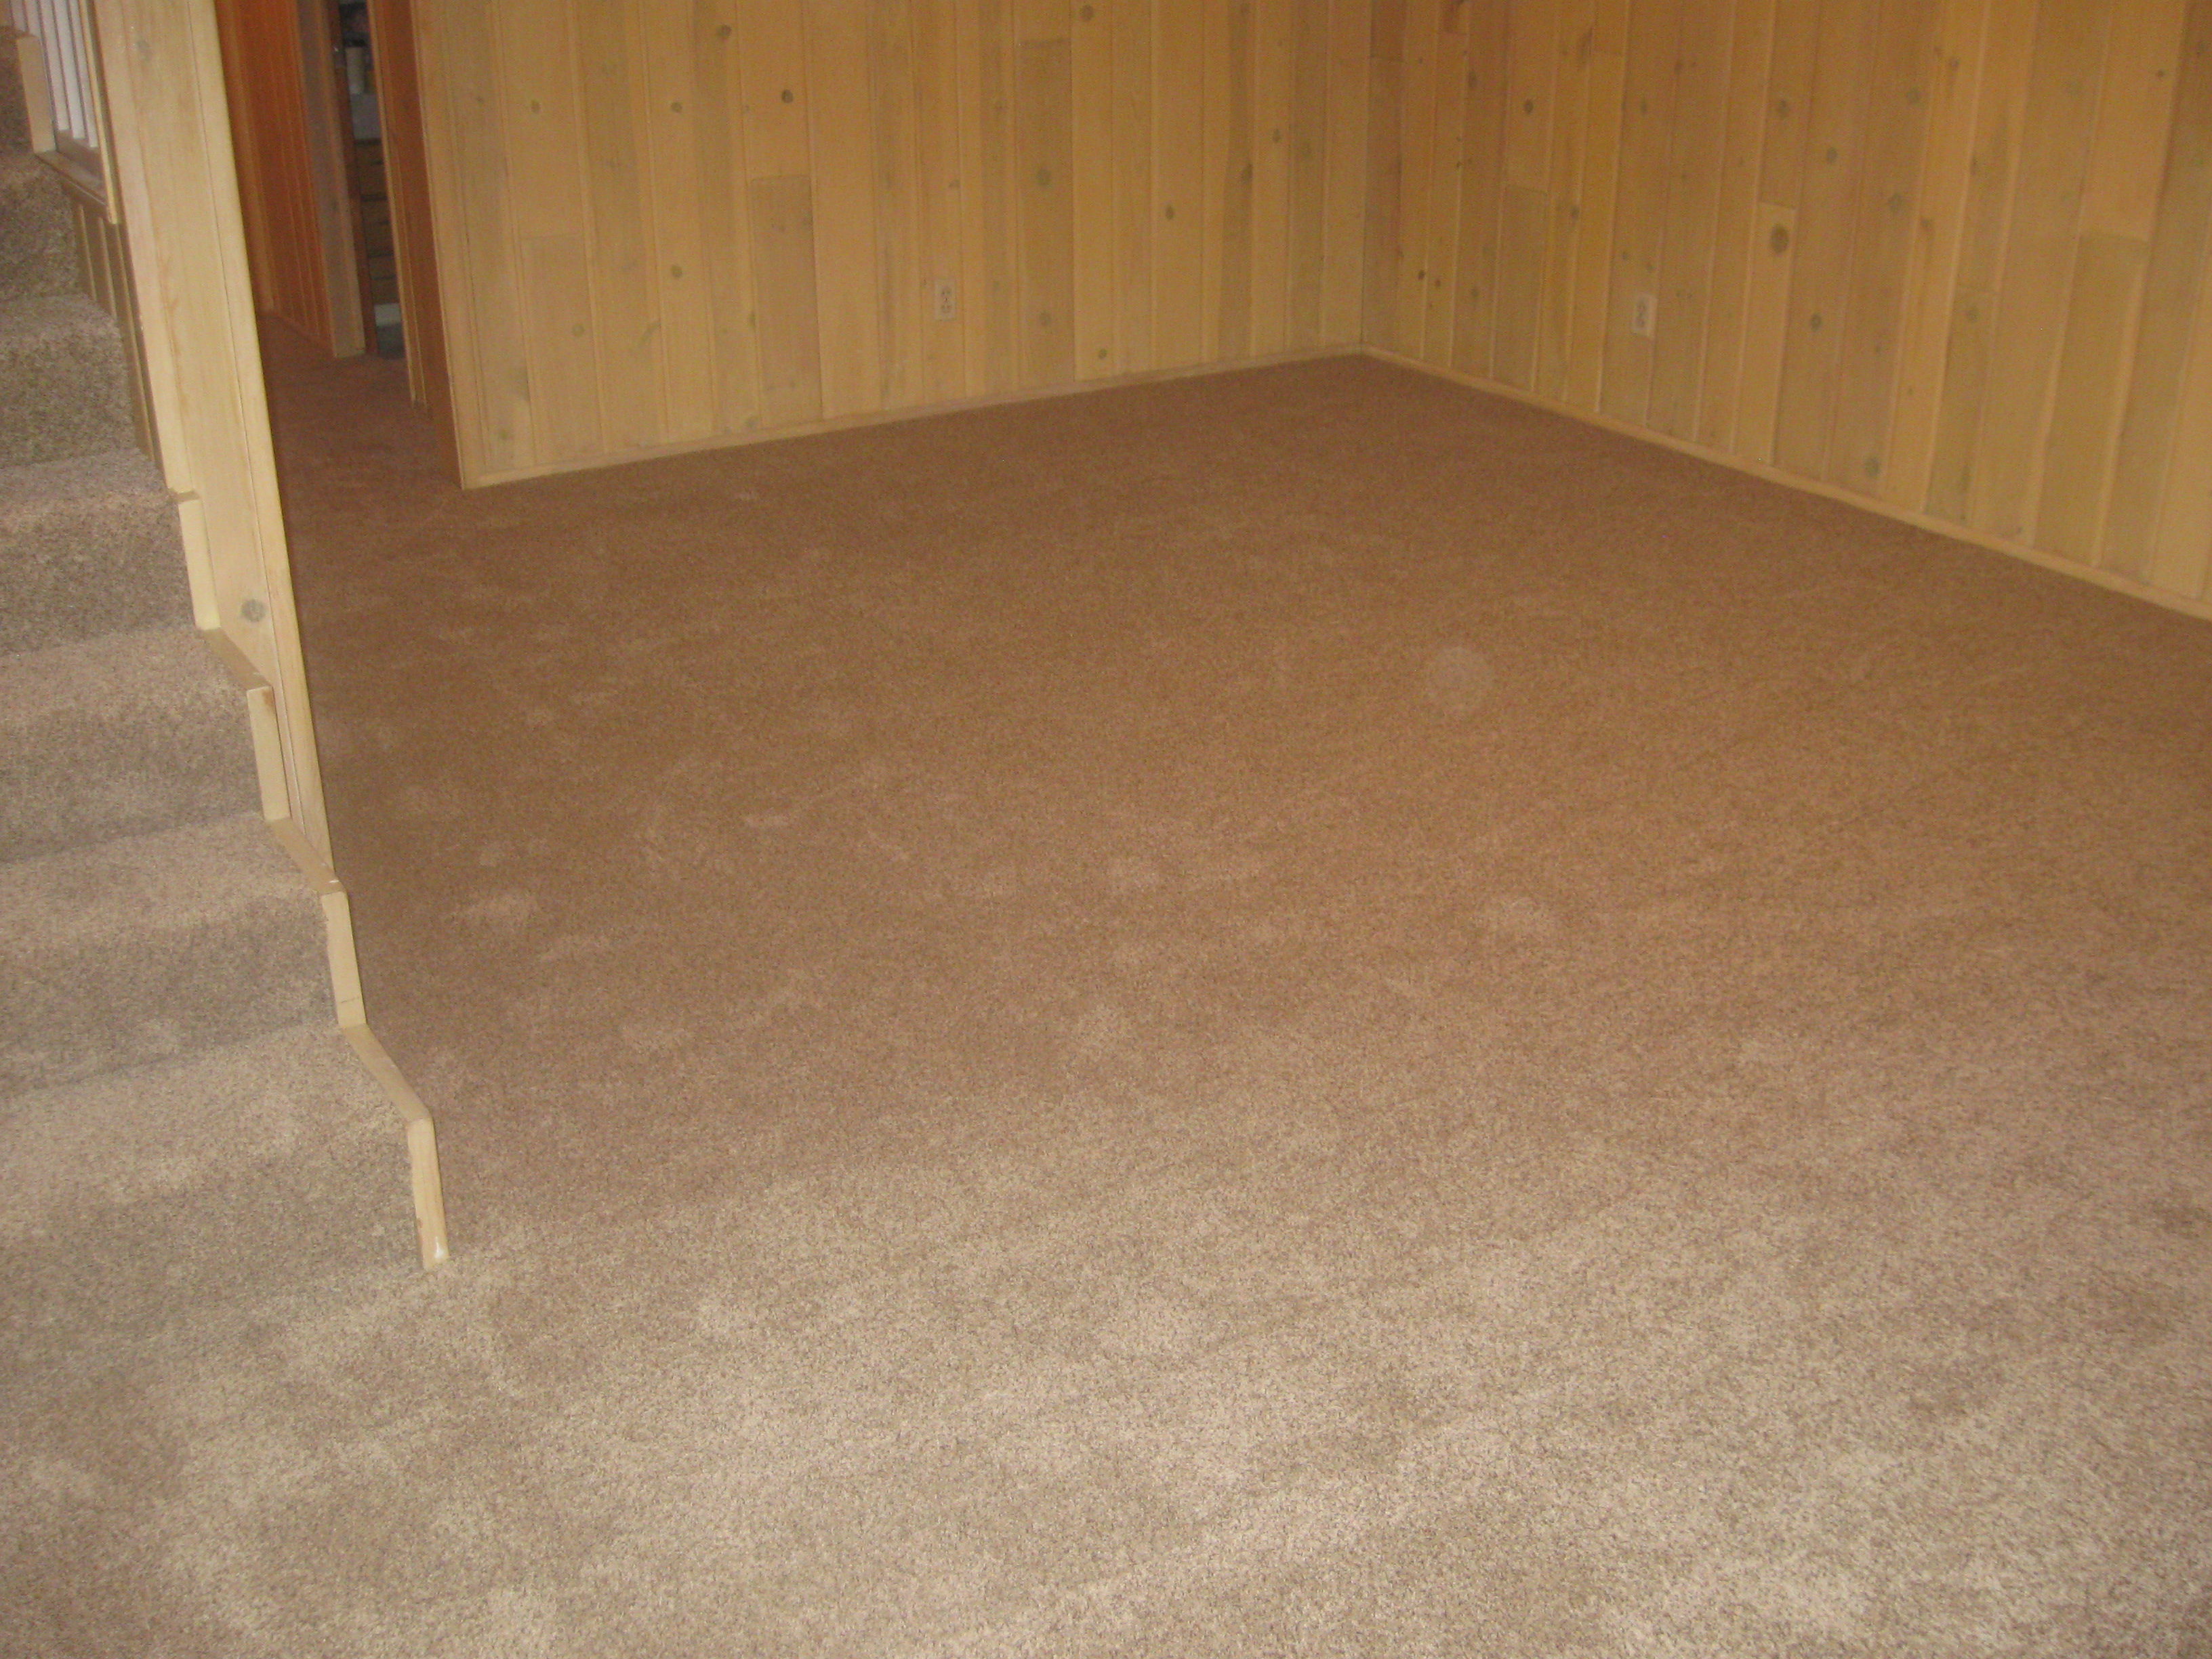 Carpet Cleaning Professional Carpet Cleaning In Niagara Pcs Of Niagara